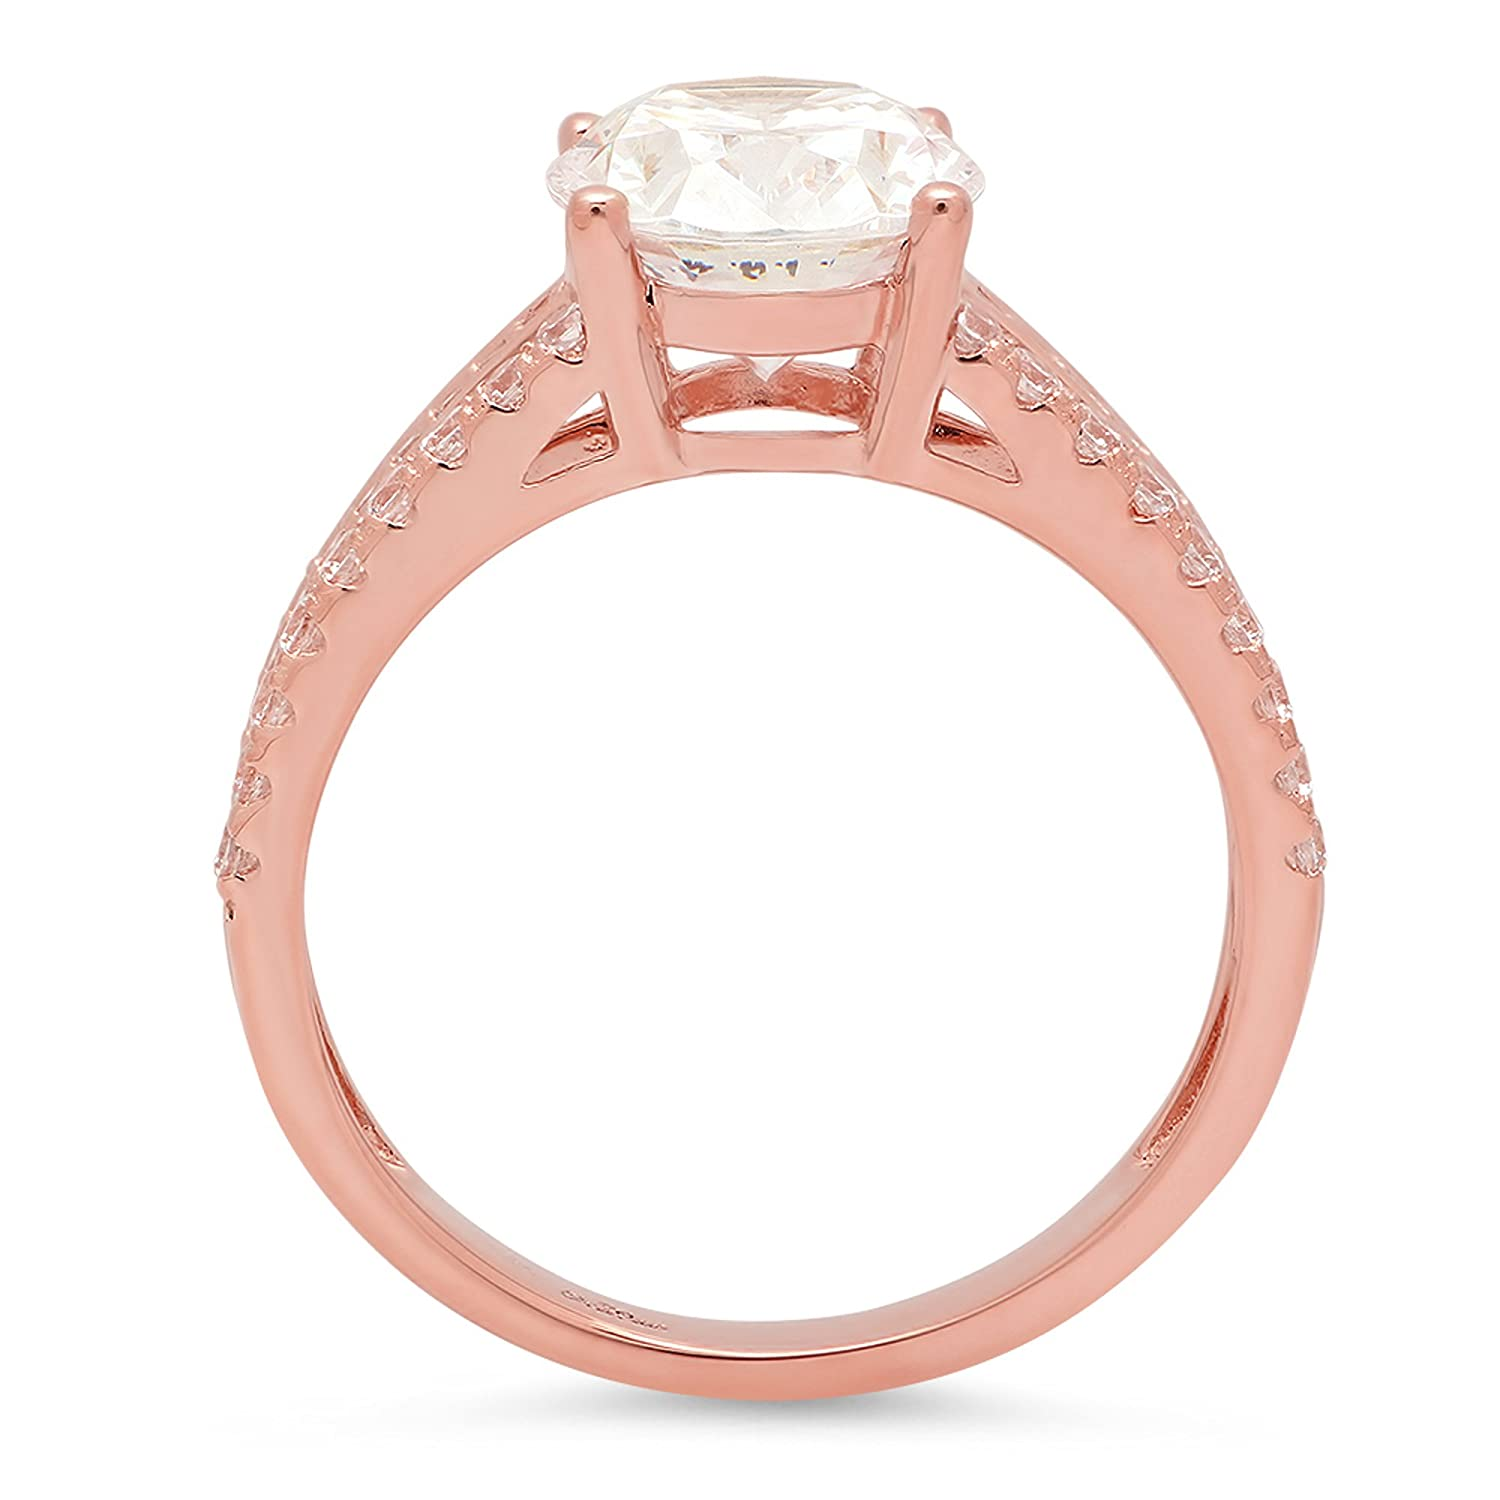 14k Solid Rose Gold 1.9ct Brilliant Oval Cut Engagement Wedding Promise Anniversary Ring Bridal Jewelry for Women